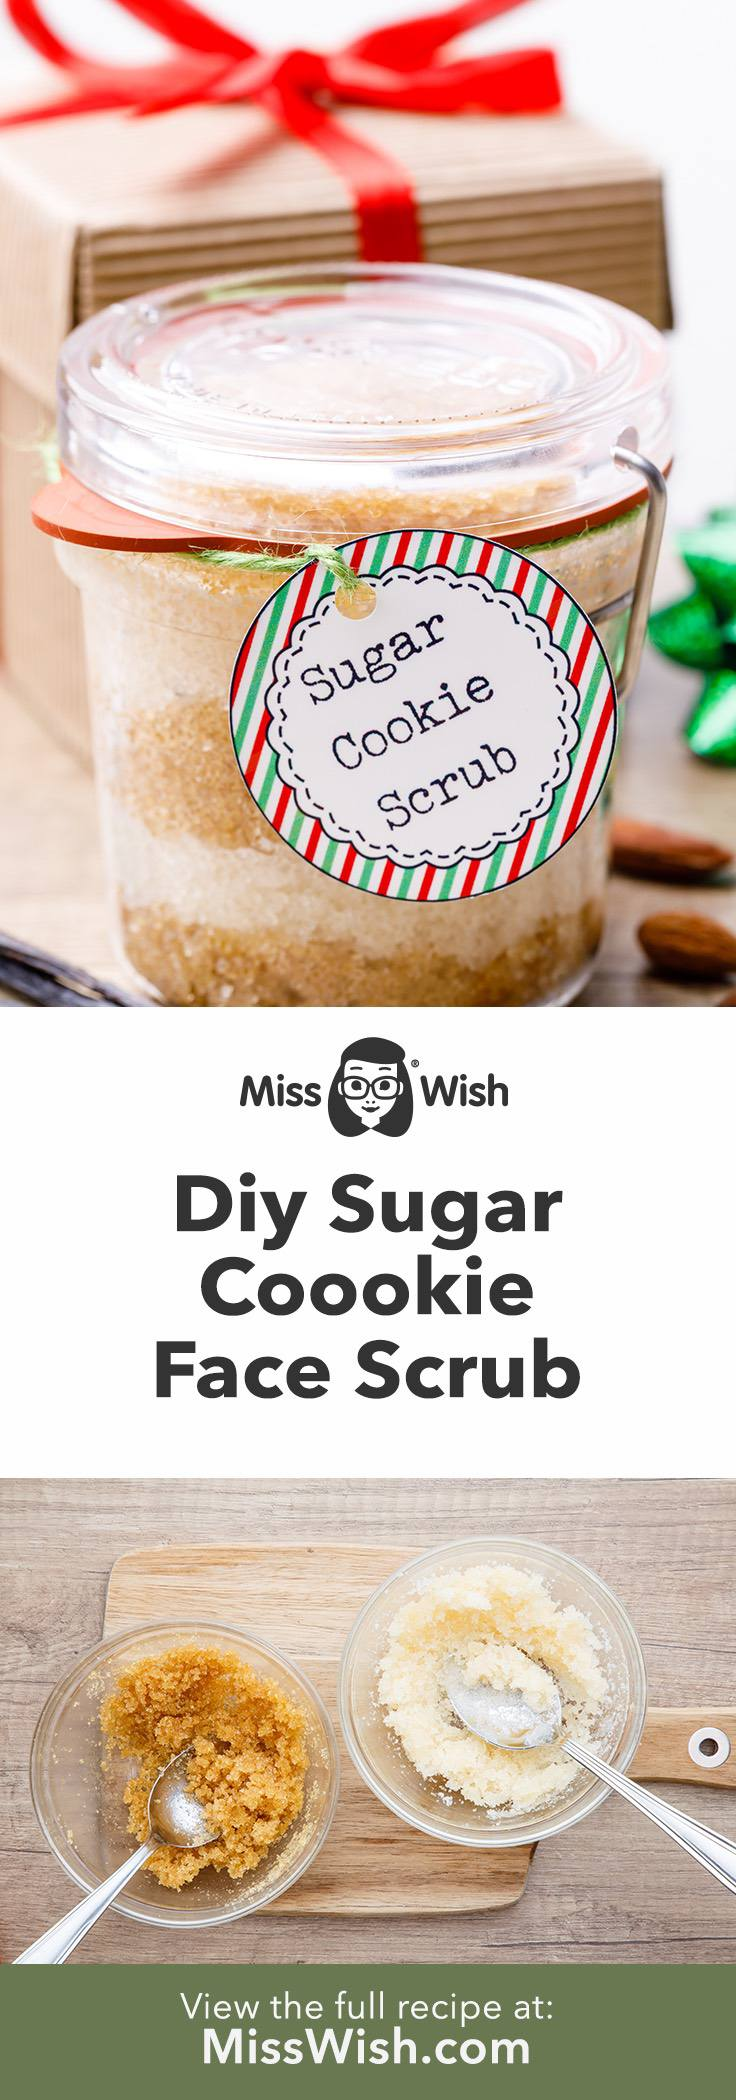 Homemade Christmas Sugar Cookie Face Scrub